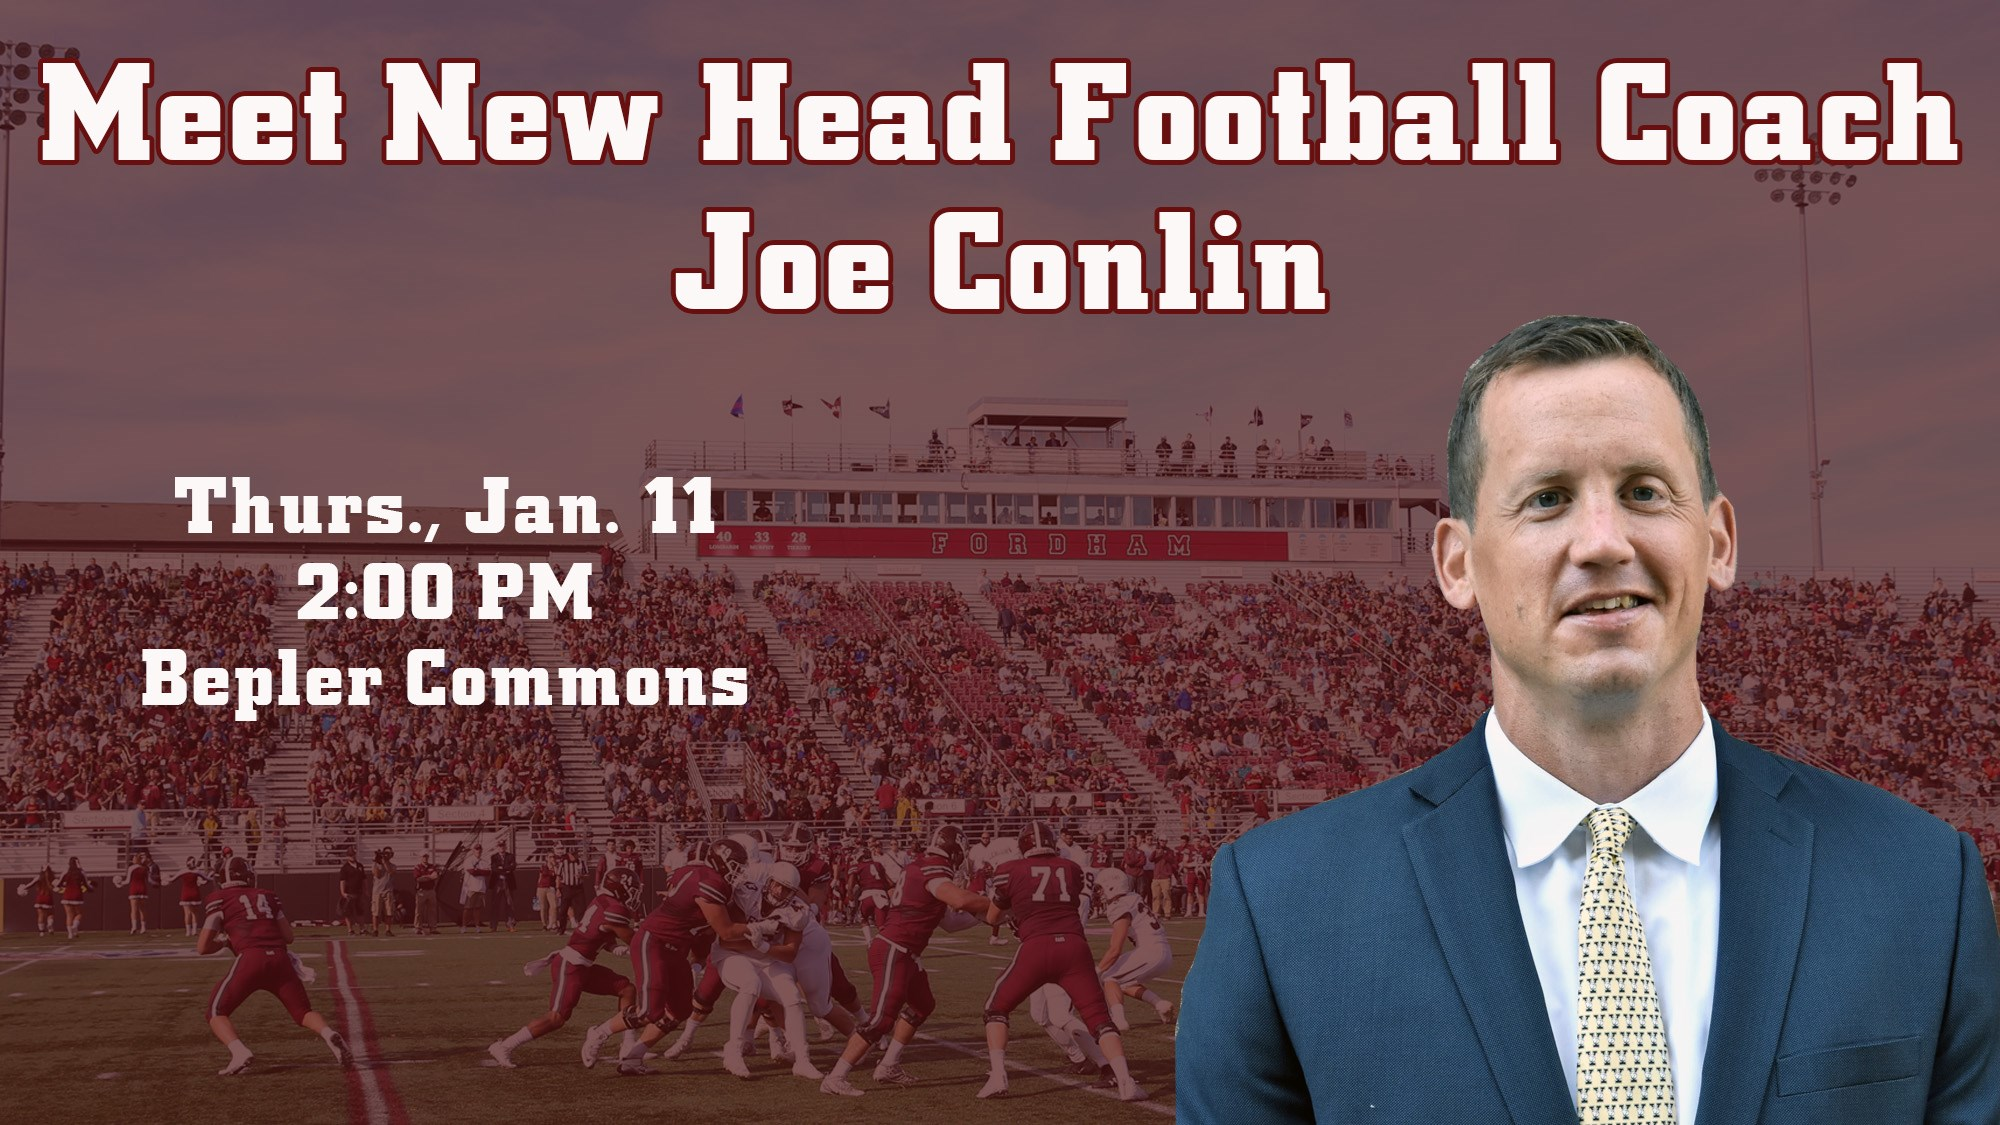 Meet Your Coach: Meet New Fordham Head Football Coach Joe Conlin On Jan. 11